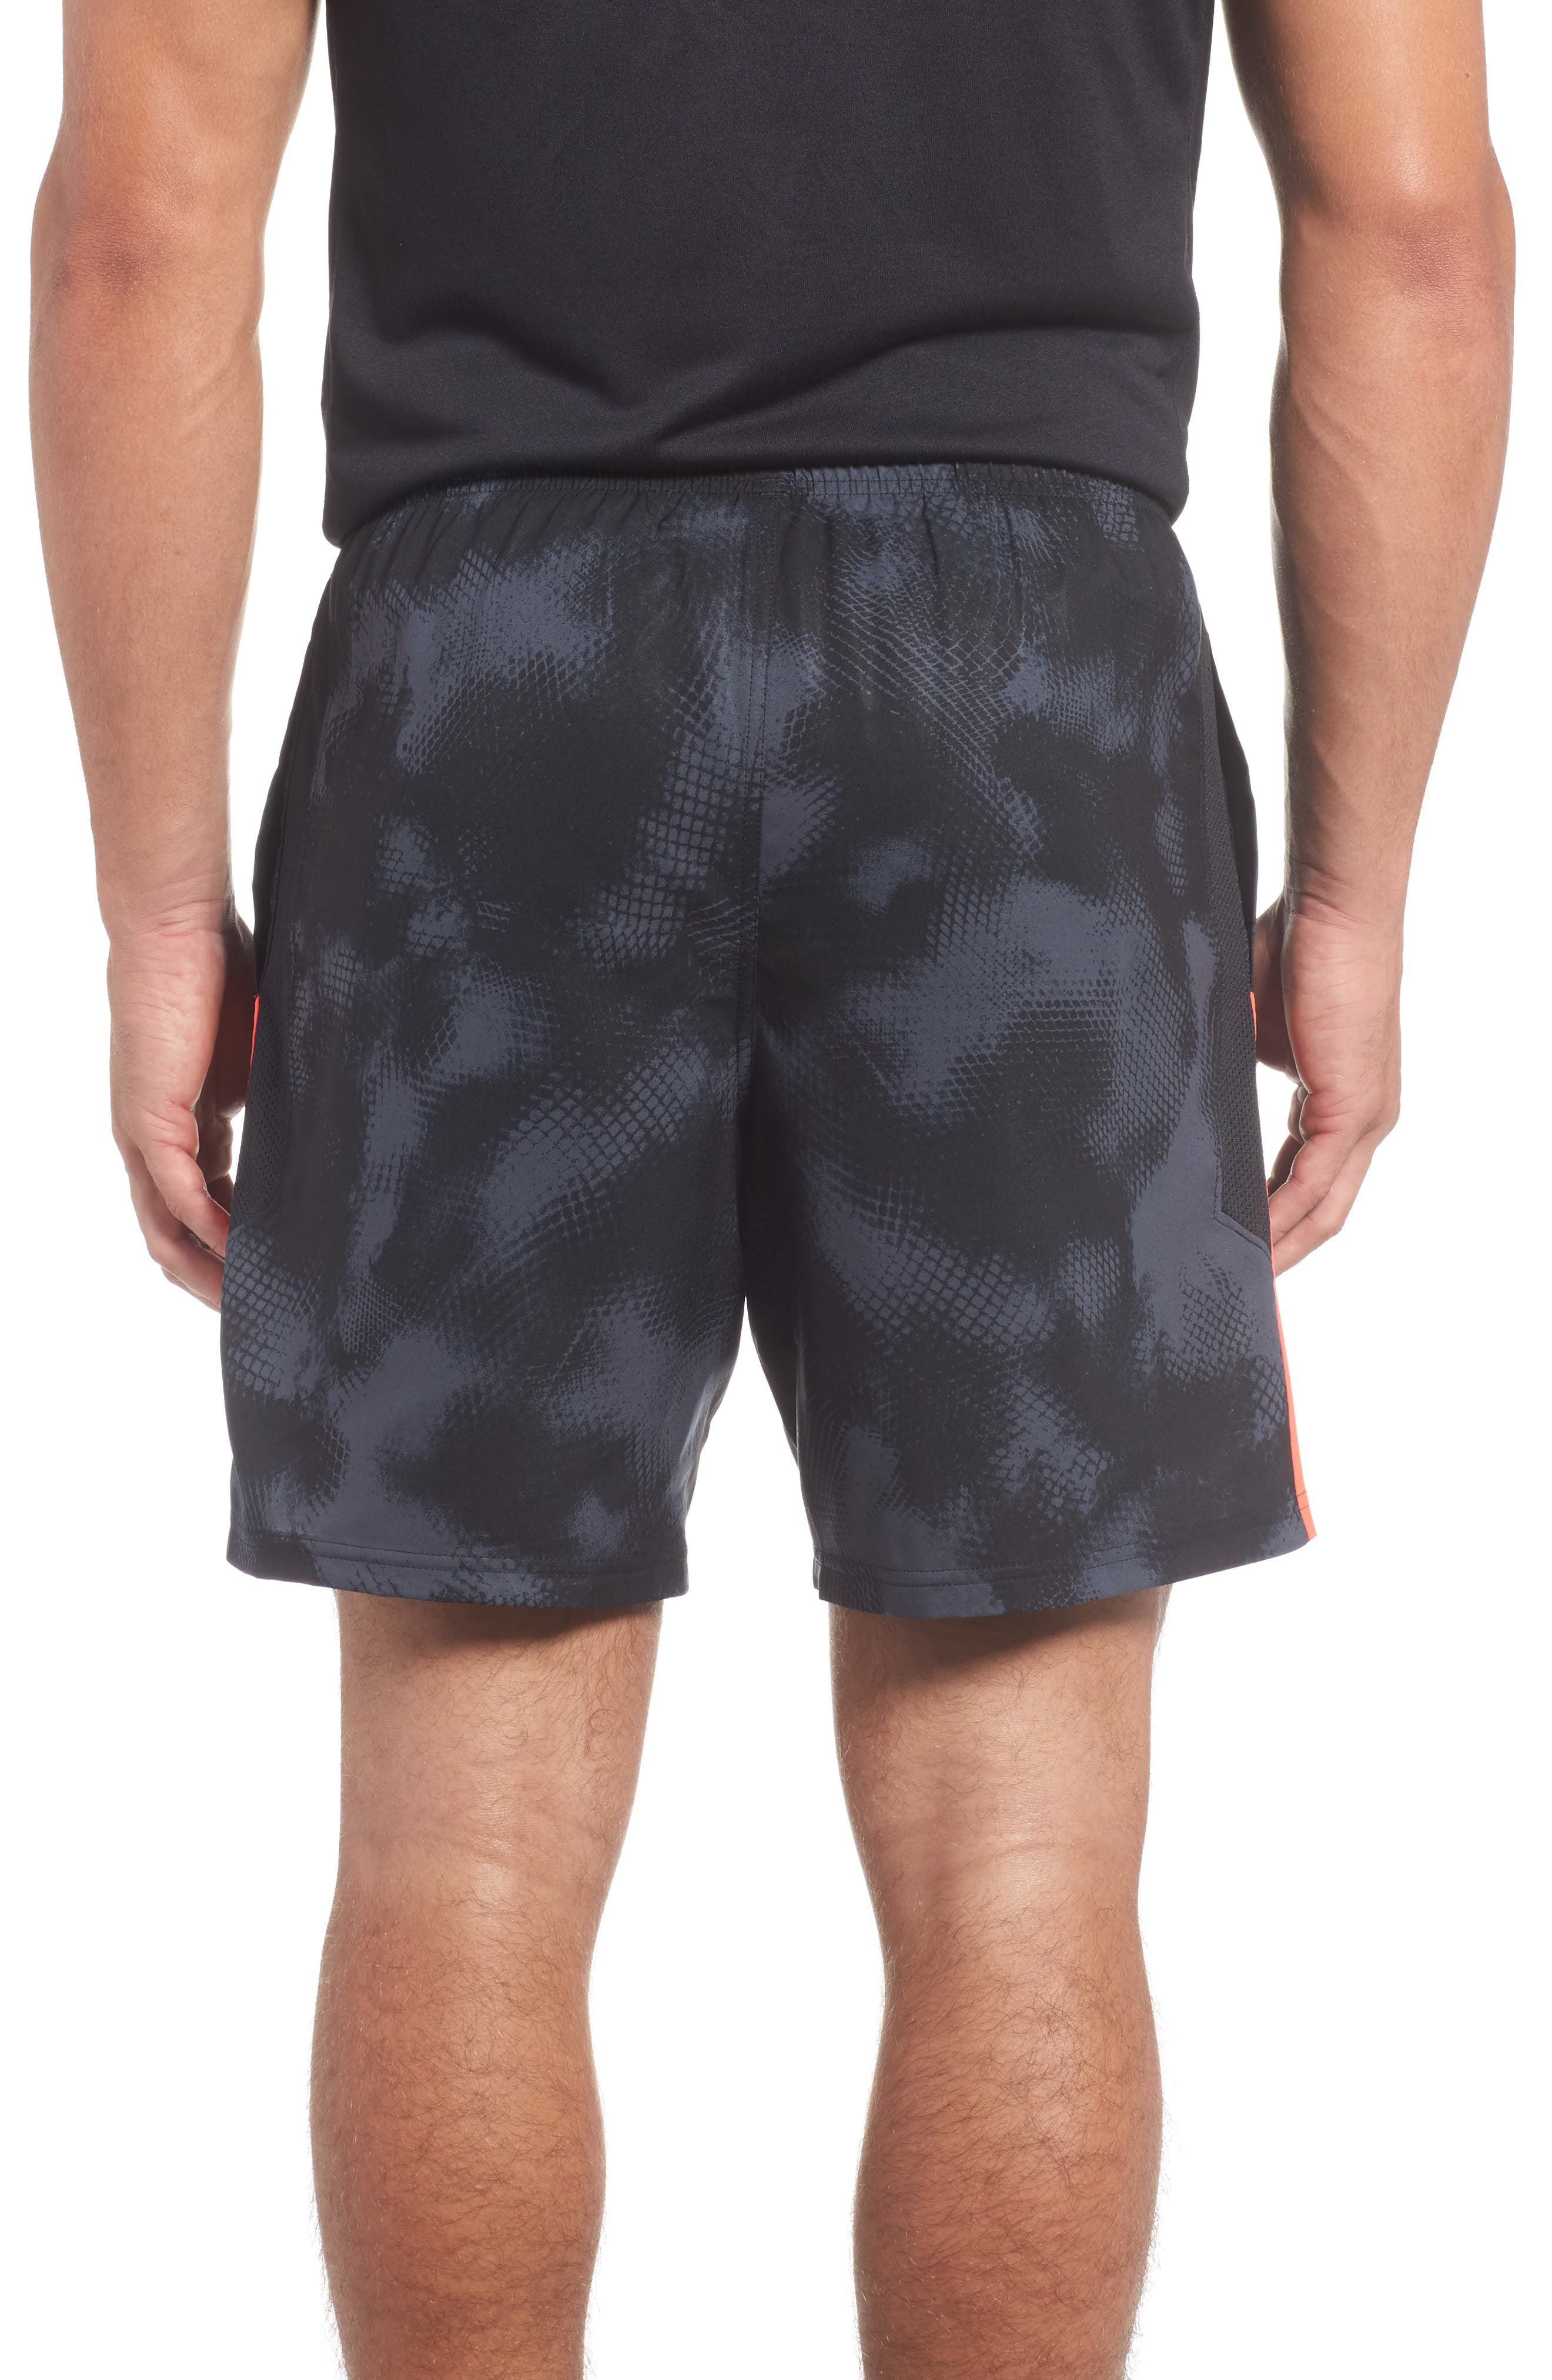 Launch Running Shorts,                             Alternate thumbnail 2, color,                             Black/ Red/ Reflective